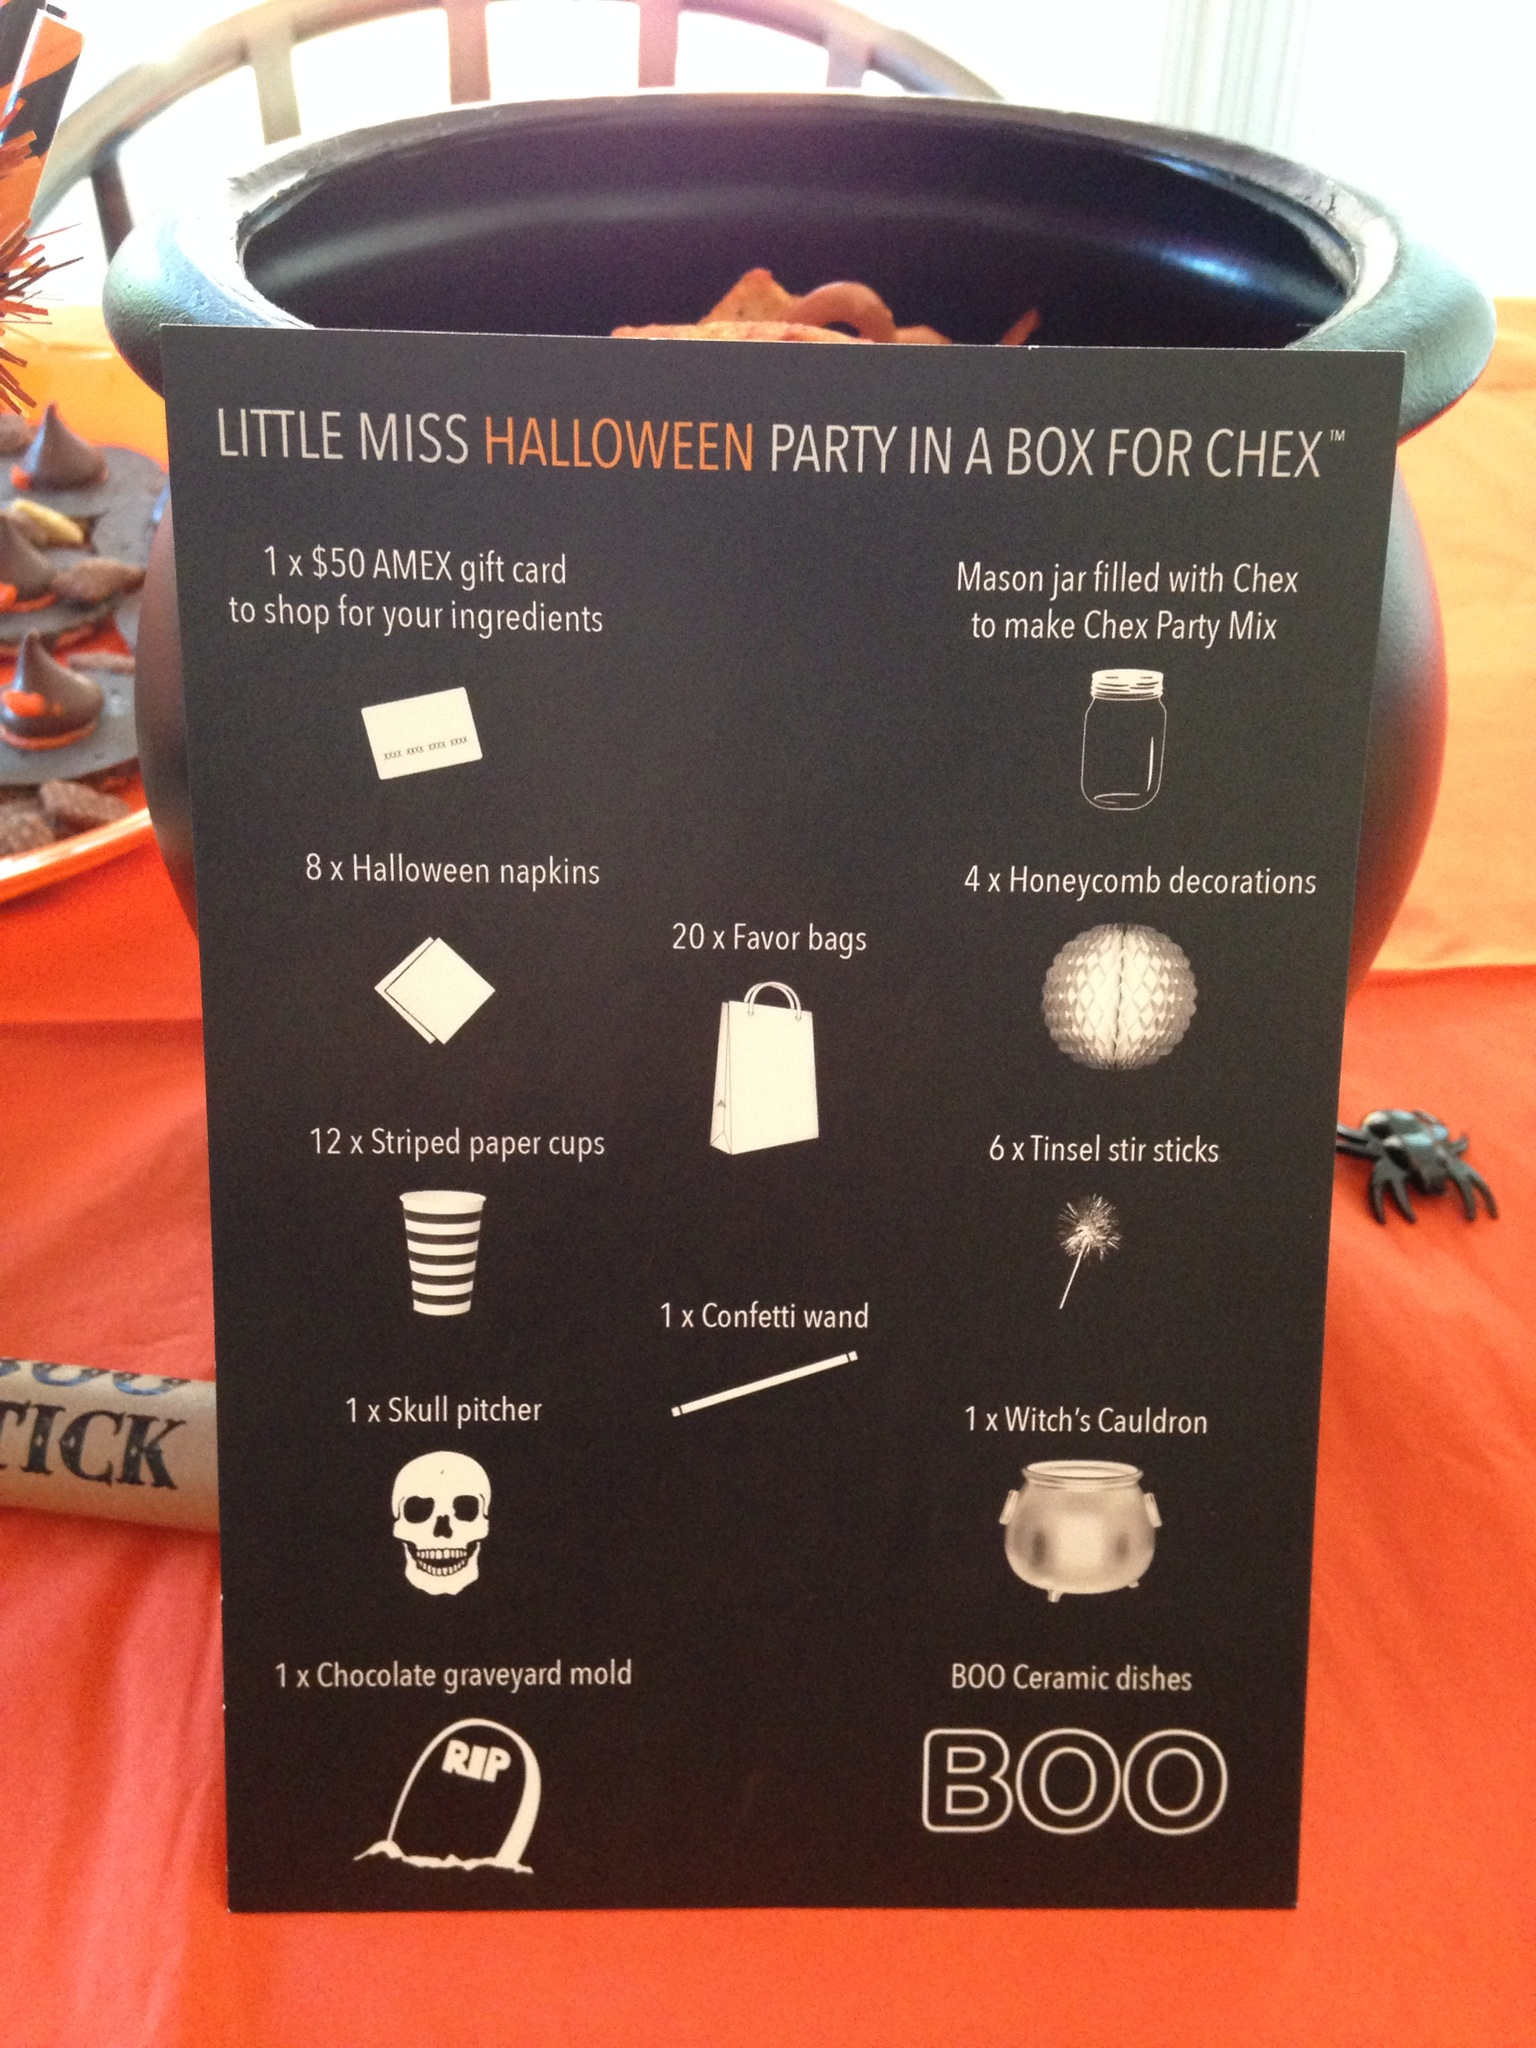 Little Miss HALLOWEEN Party in a Box For Chex